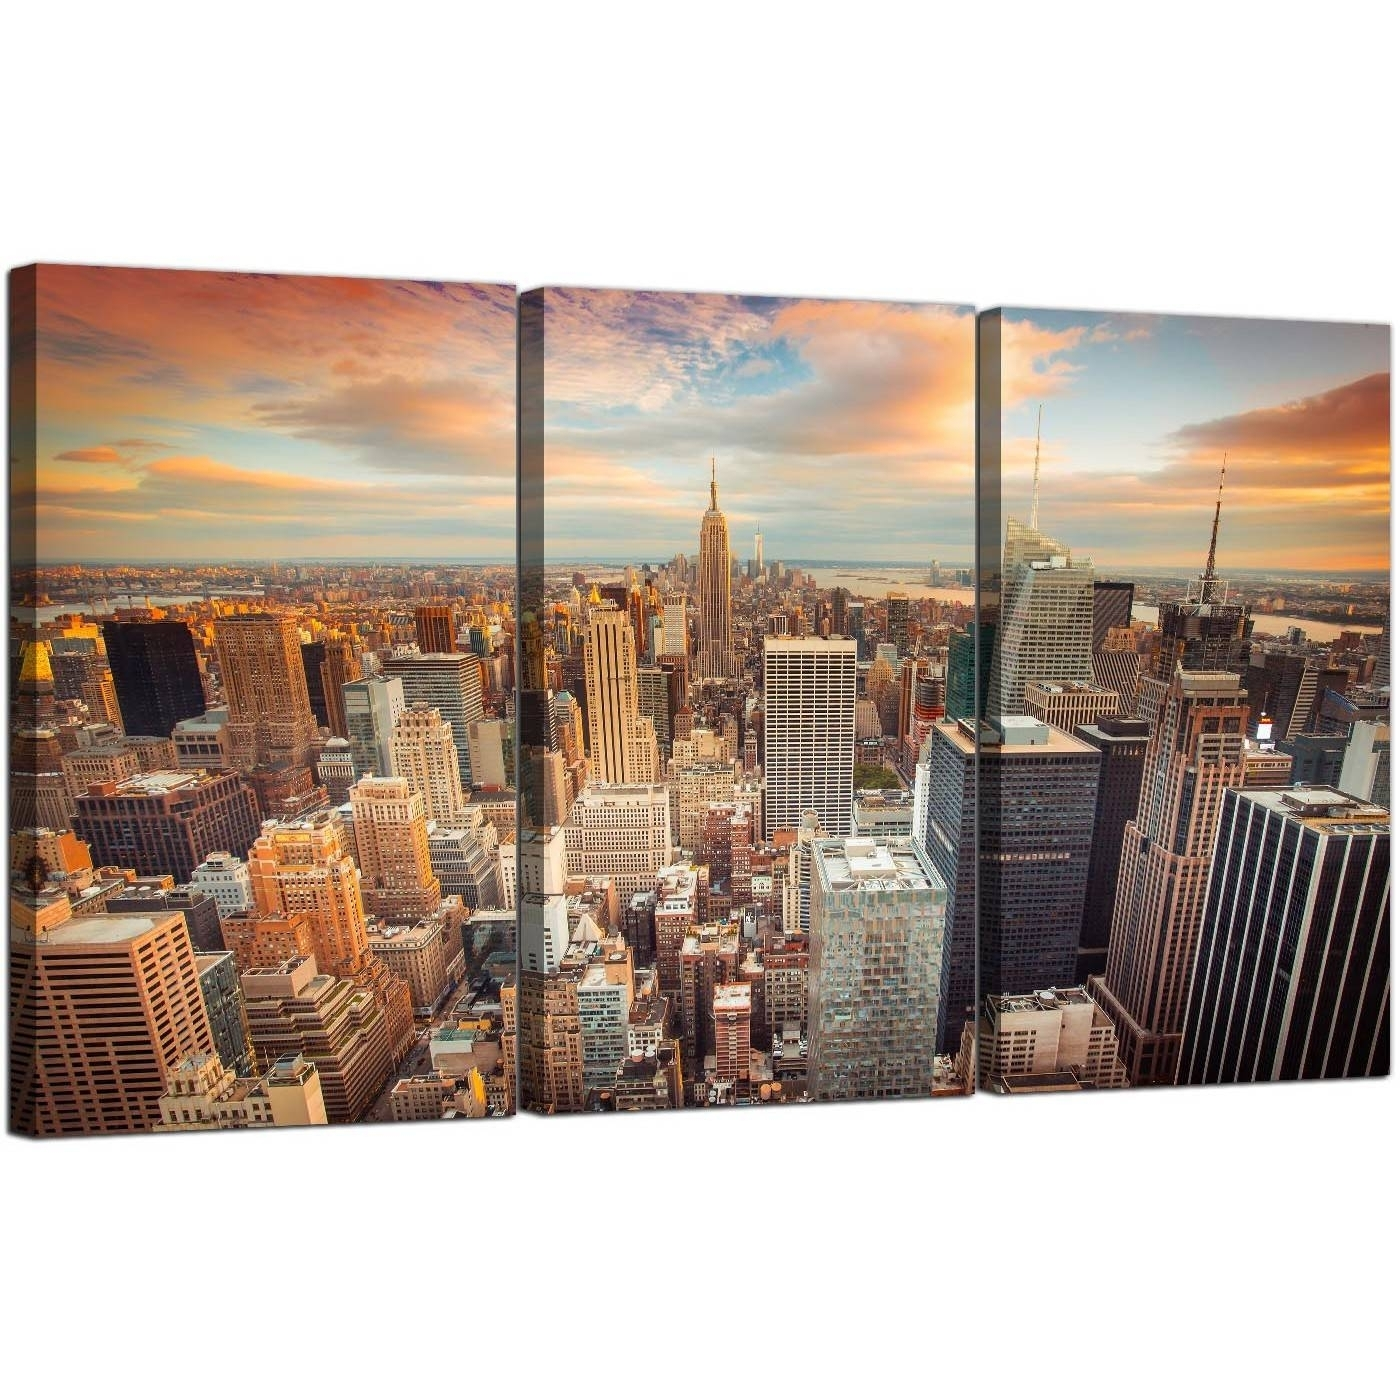 20 Collection Of New York City Canvas Wall Art With Regard To Latest Canvas Wall Art Of New York City (View 1 of 15)